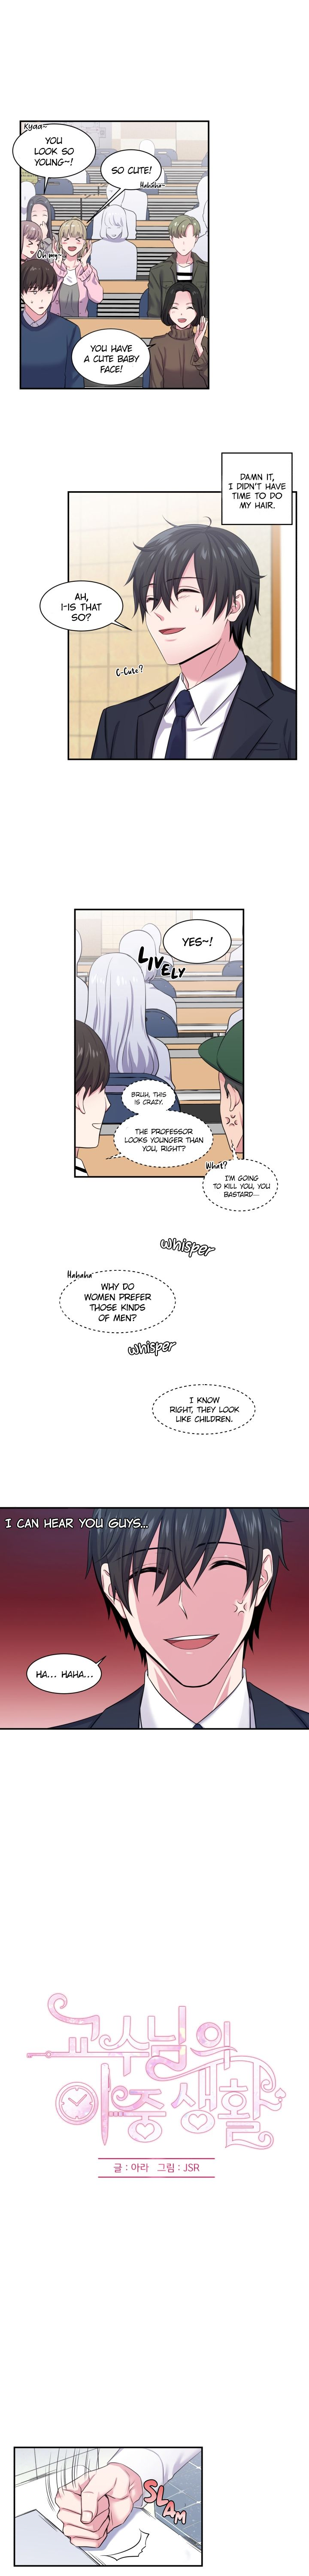 The Professor's Double Life - chapter 2 - #3